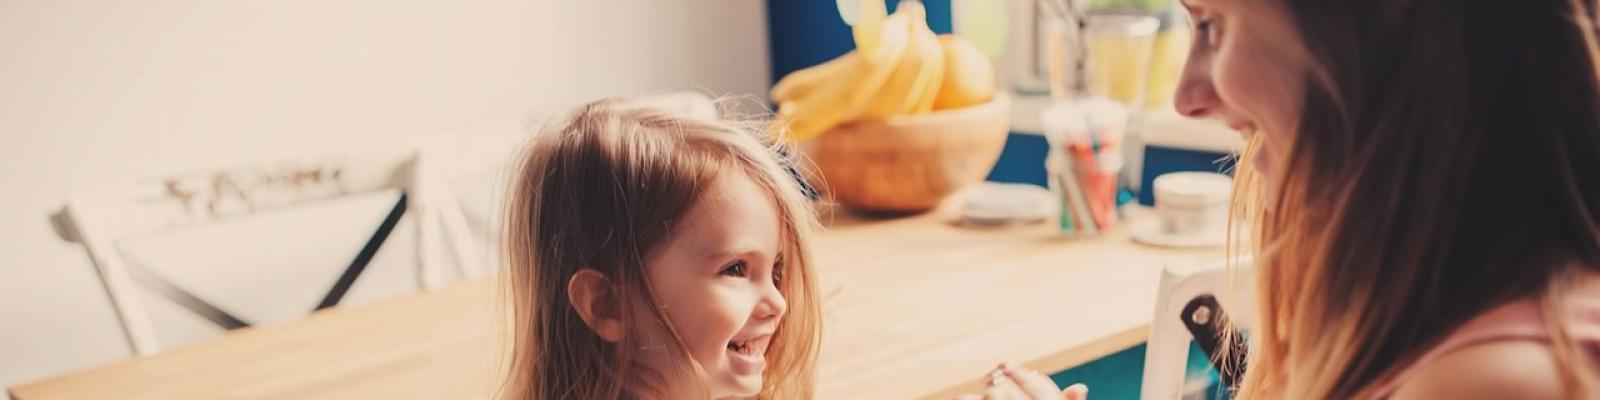 When should we introduce the language of schooling to our bilingual child? Advice from a specialist in bilingual family interaction